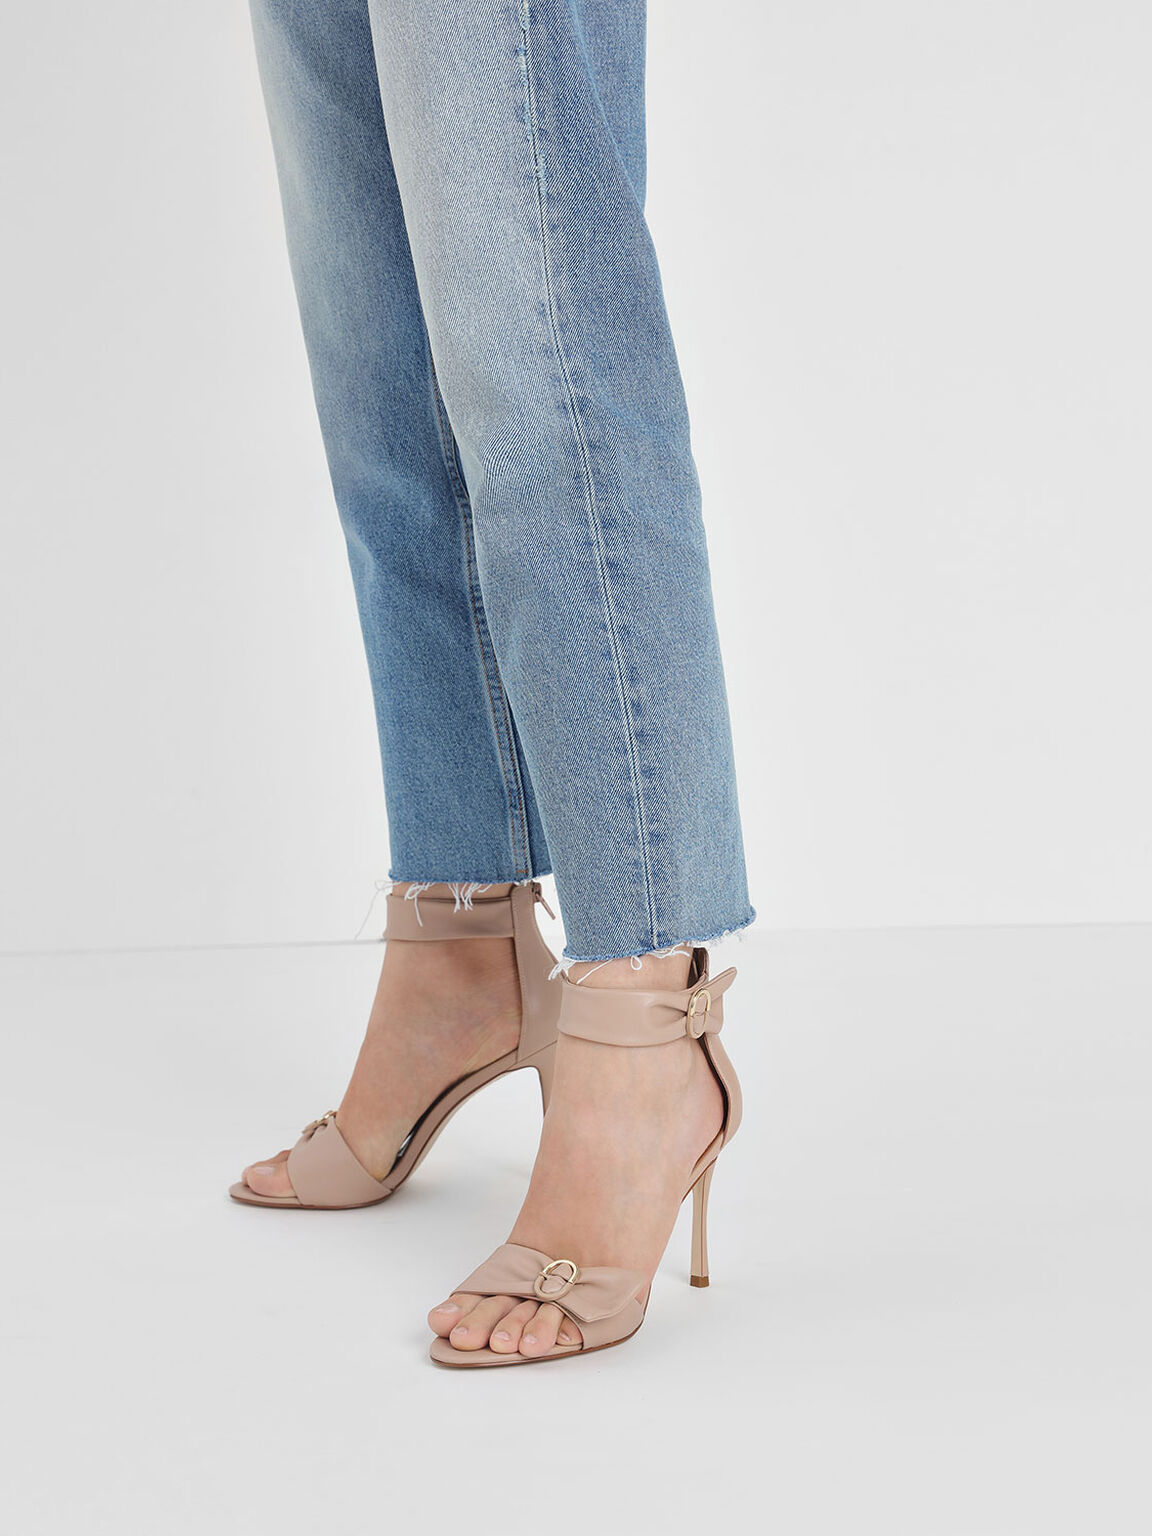 Ruched Two-Tone Buckle Stiletto Heels, Nude, hi-res